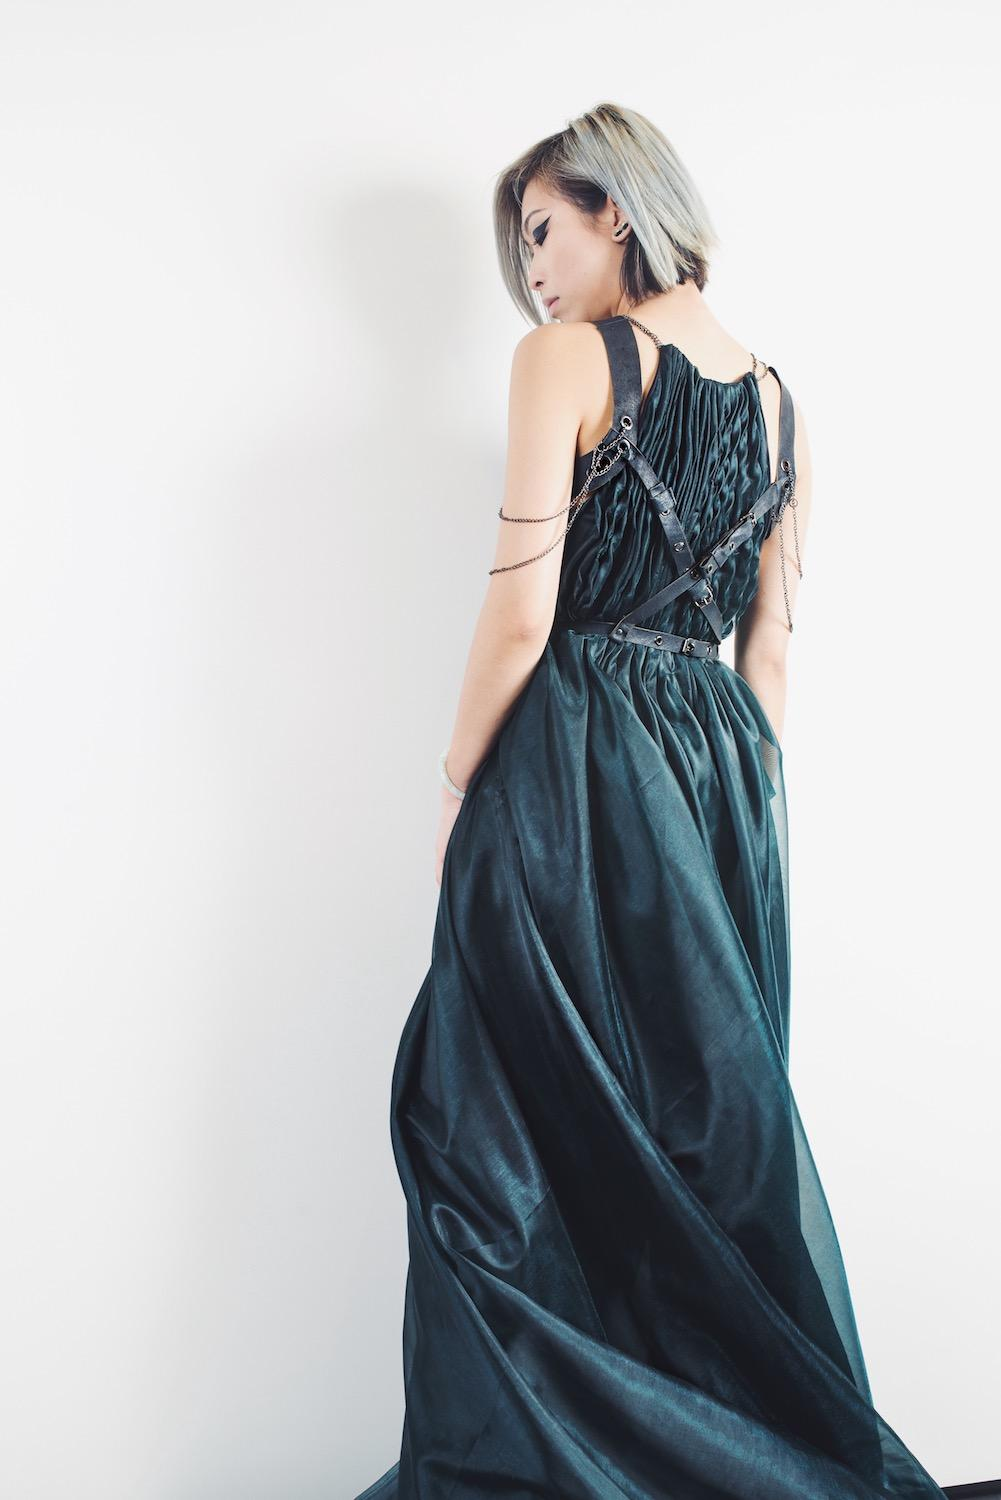 Dress by Jhennipher Cambraia